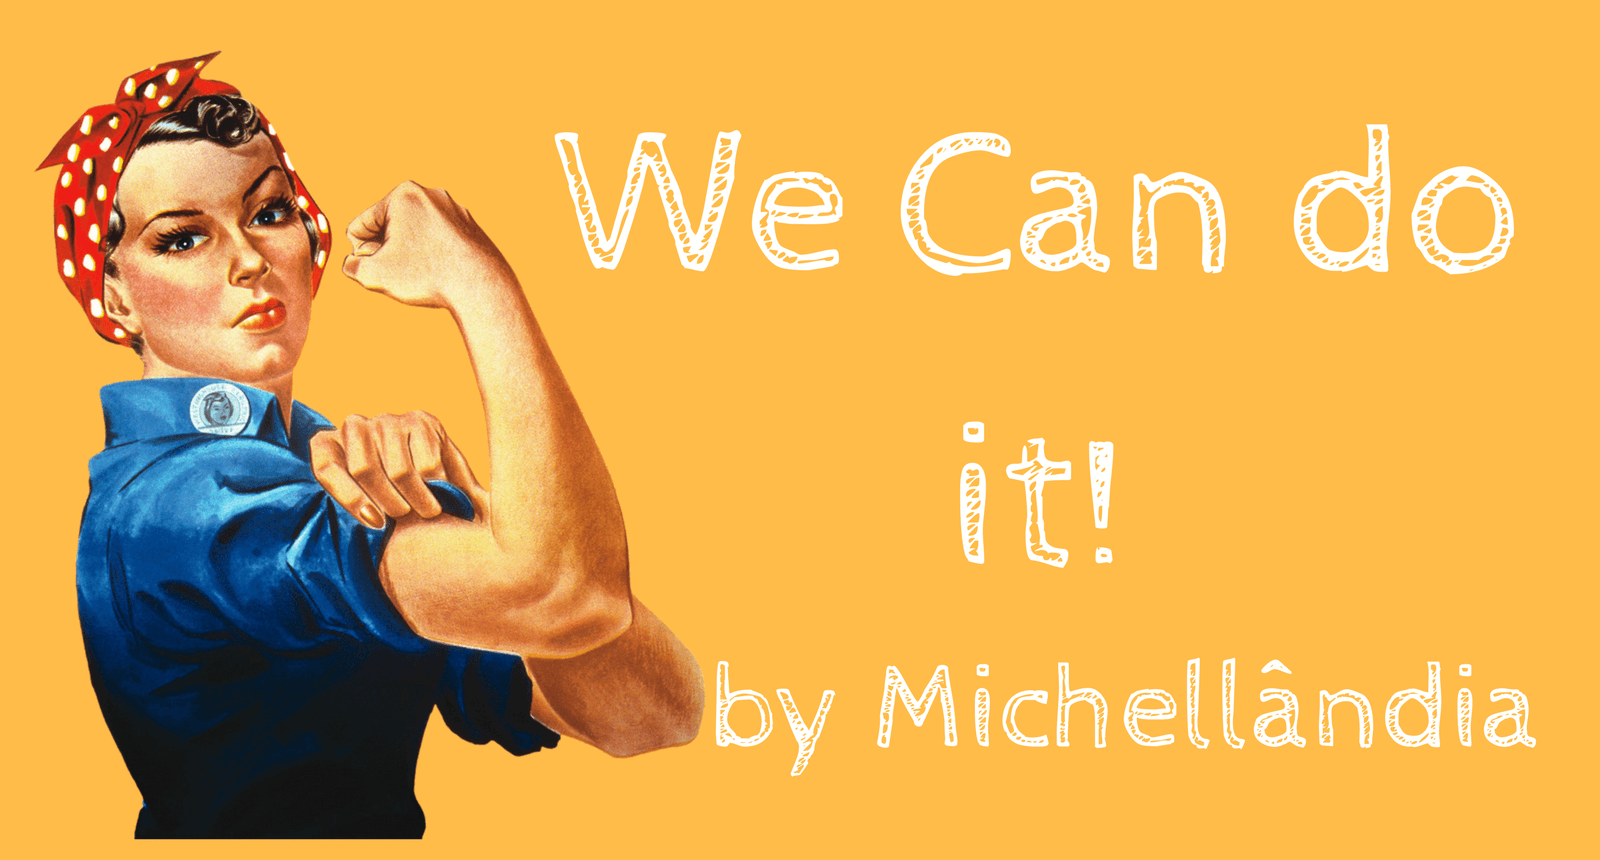 We can do it! By Rogério Imbuzeiro